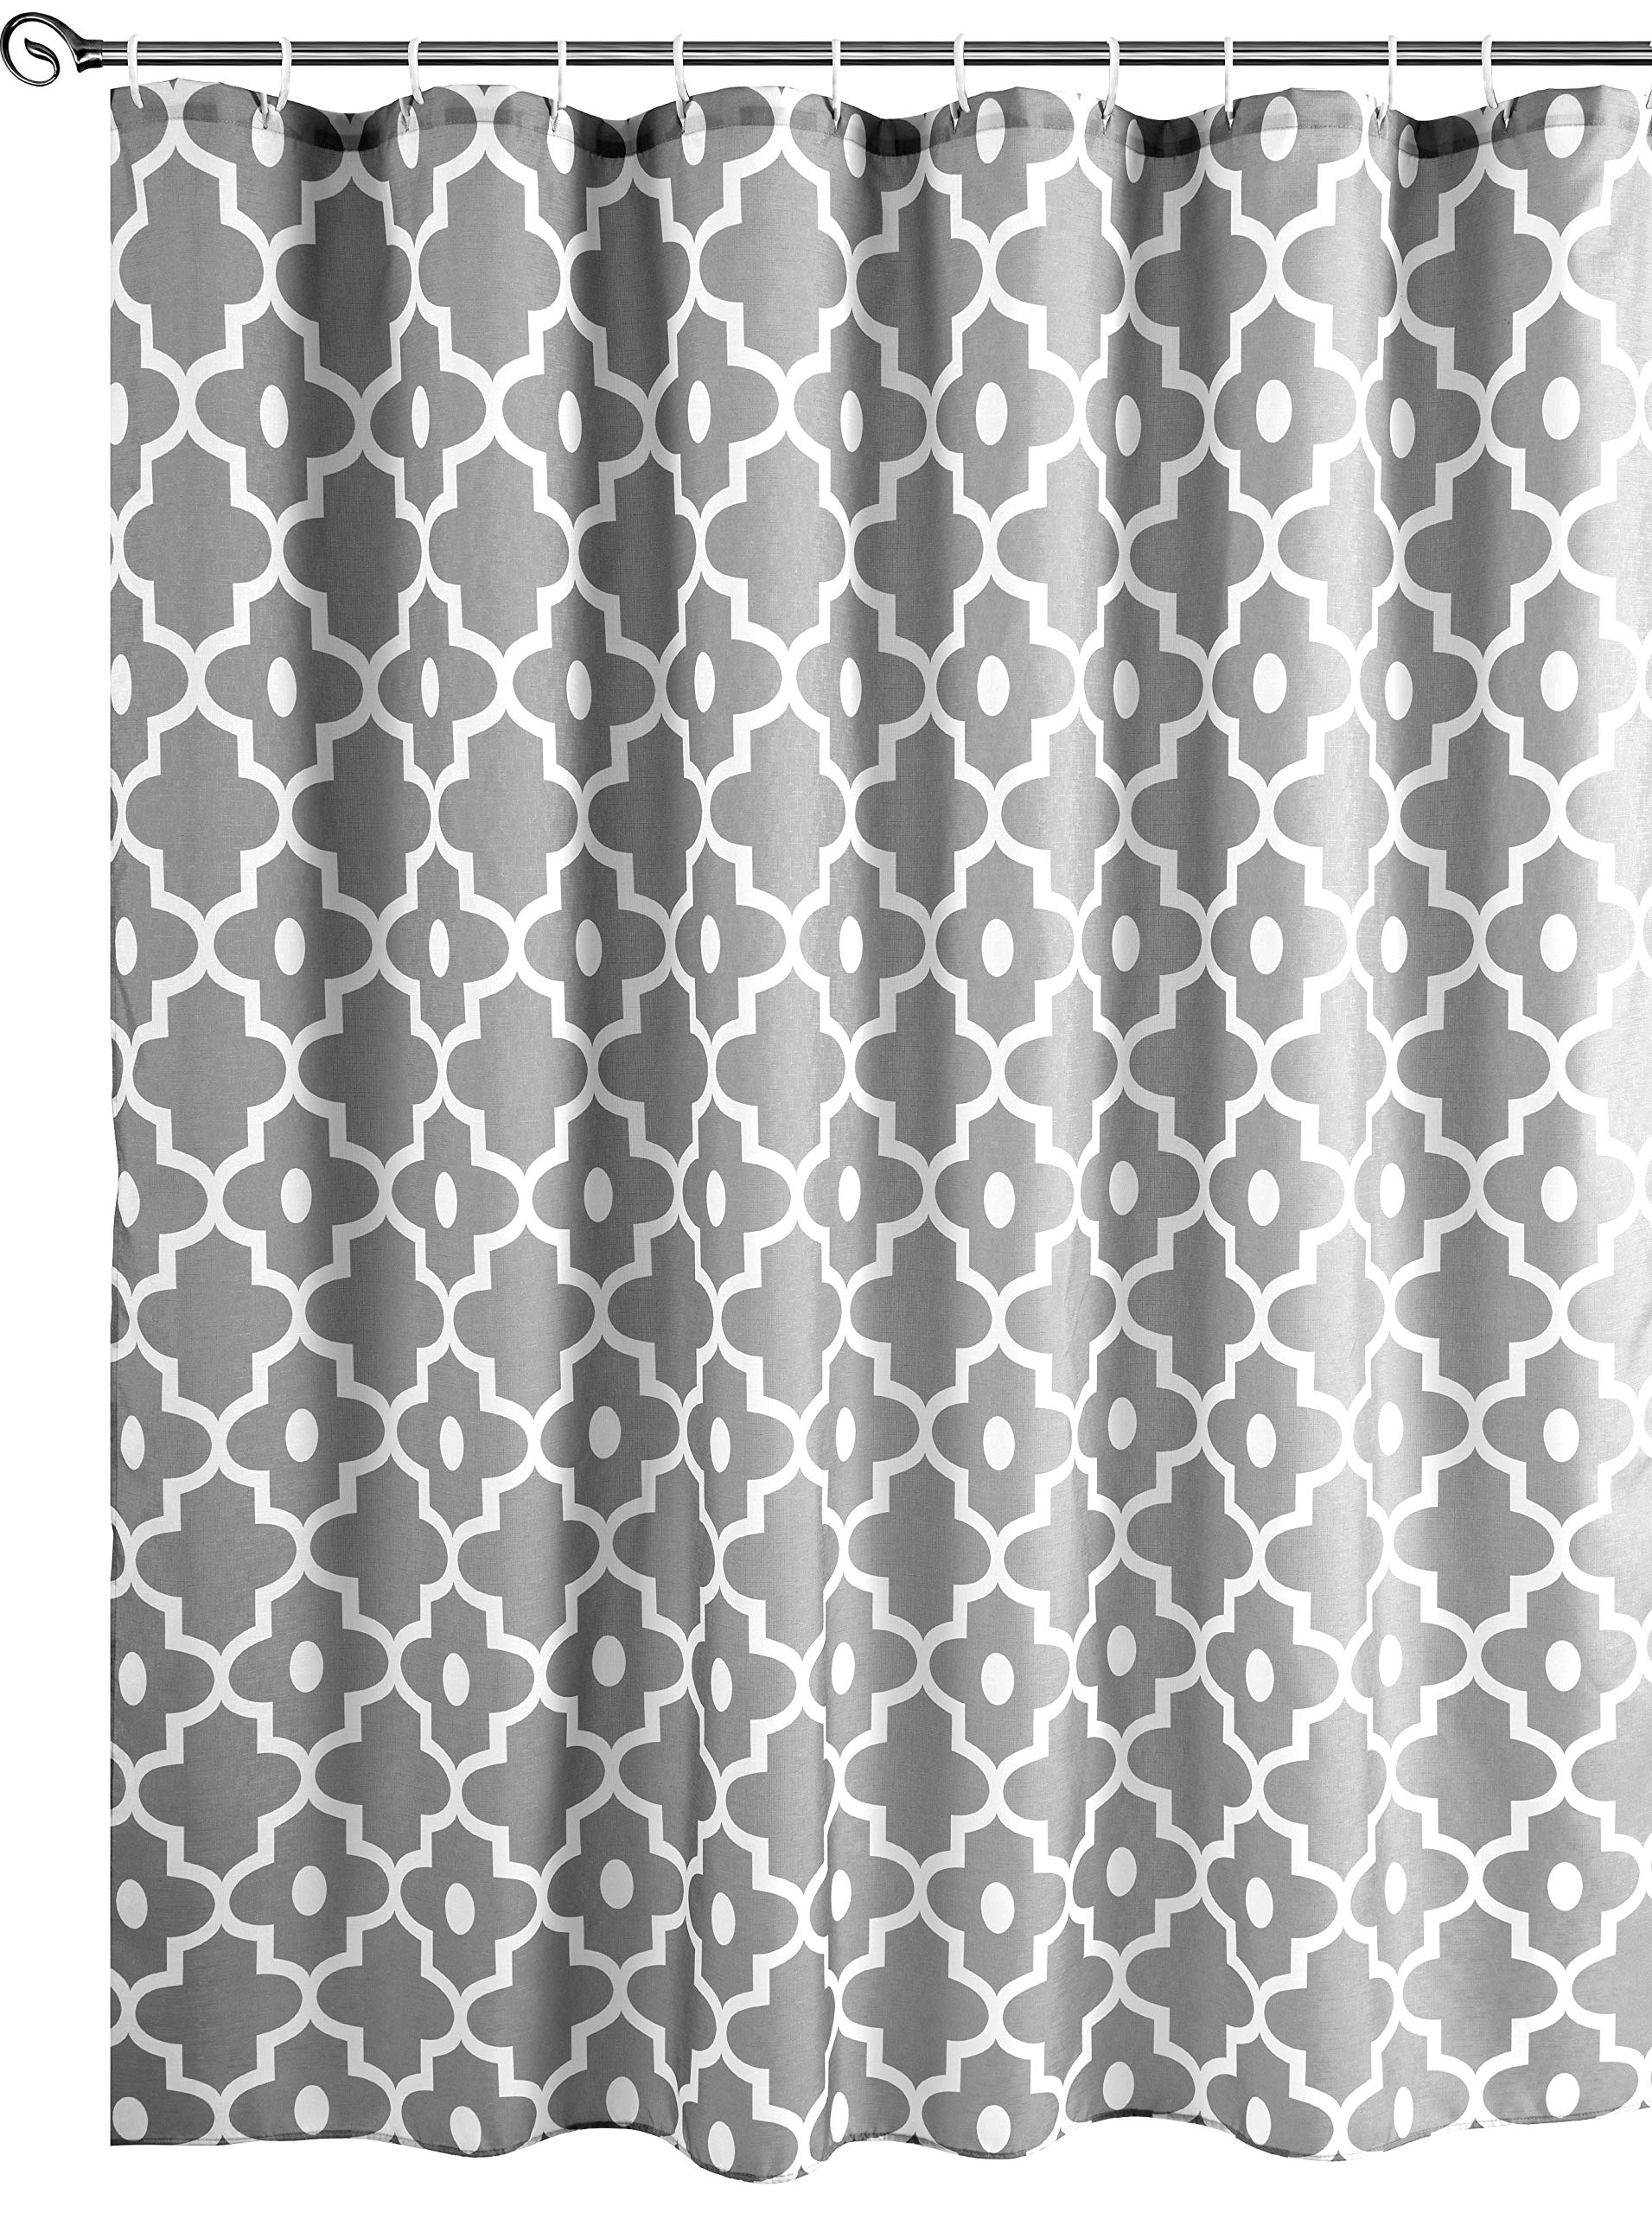 Biscaynebay Textured Fabric Shower Curtains, Morocco Pearl Prinetd Bathroom Curtains, Silver Grey 72 by 72 Inches by Biscaynebay